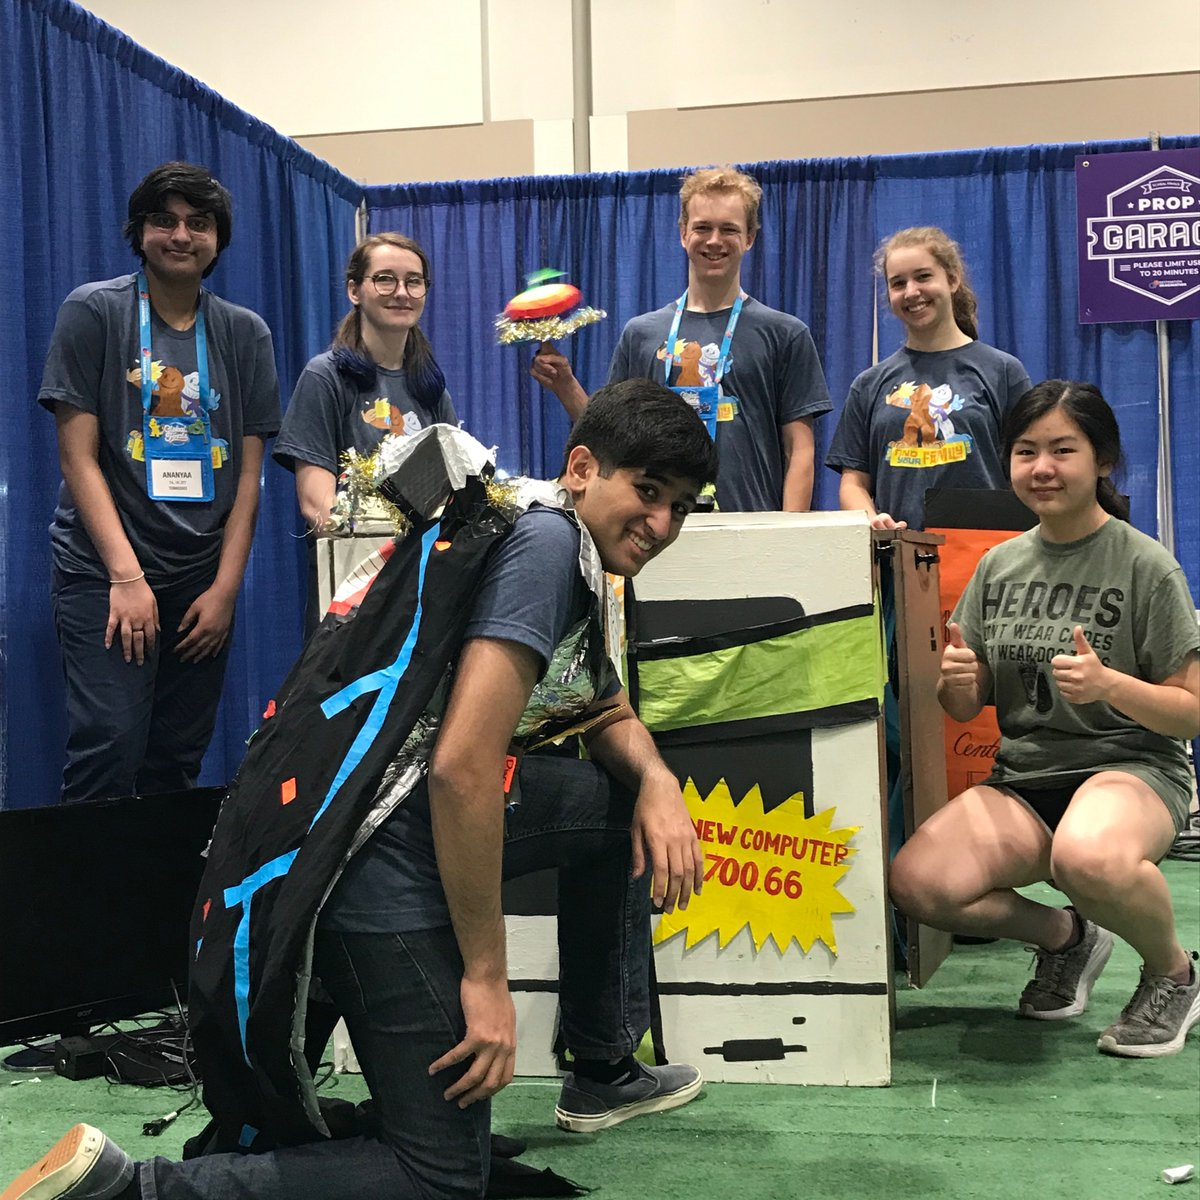 Congratulations to our Destination Imagination Team, Murphy's Law, for coming in 8th place at Global Finals! They competed against over 50 teams, from all over the world, in the Fine Arts Game On challenge at the Global Finals in Kansas City. #creativeproblemsolving #hutchcfe #DI